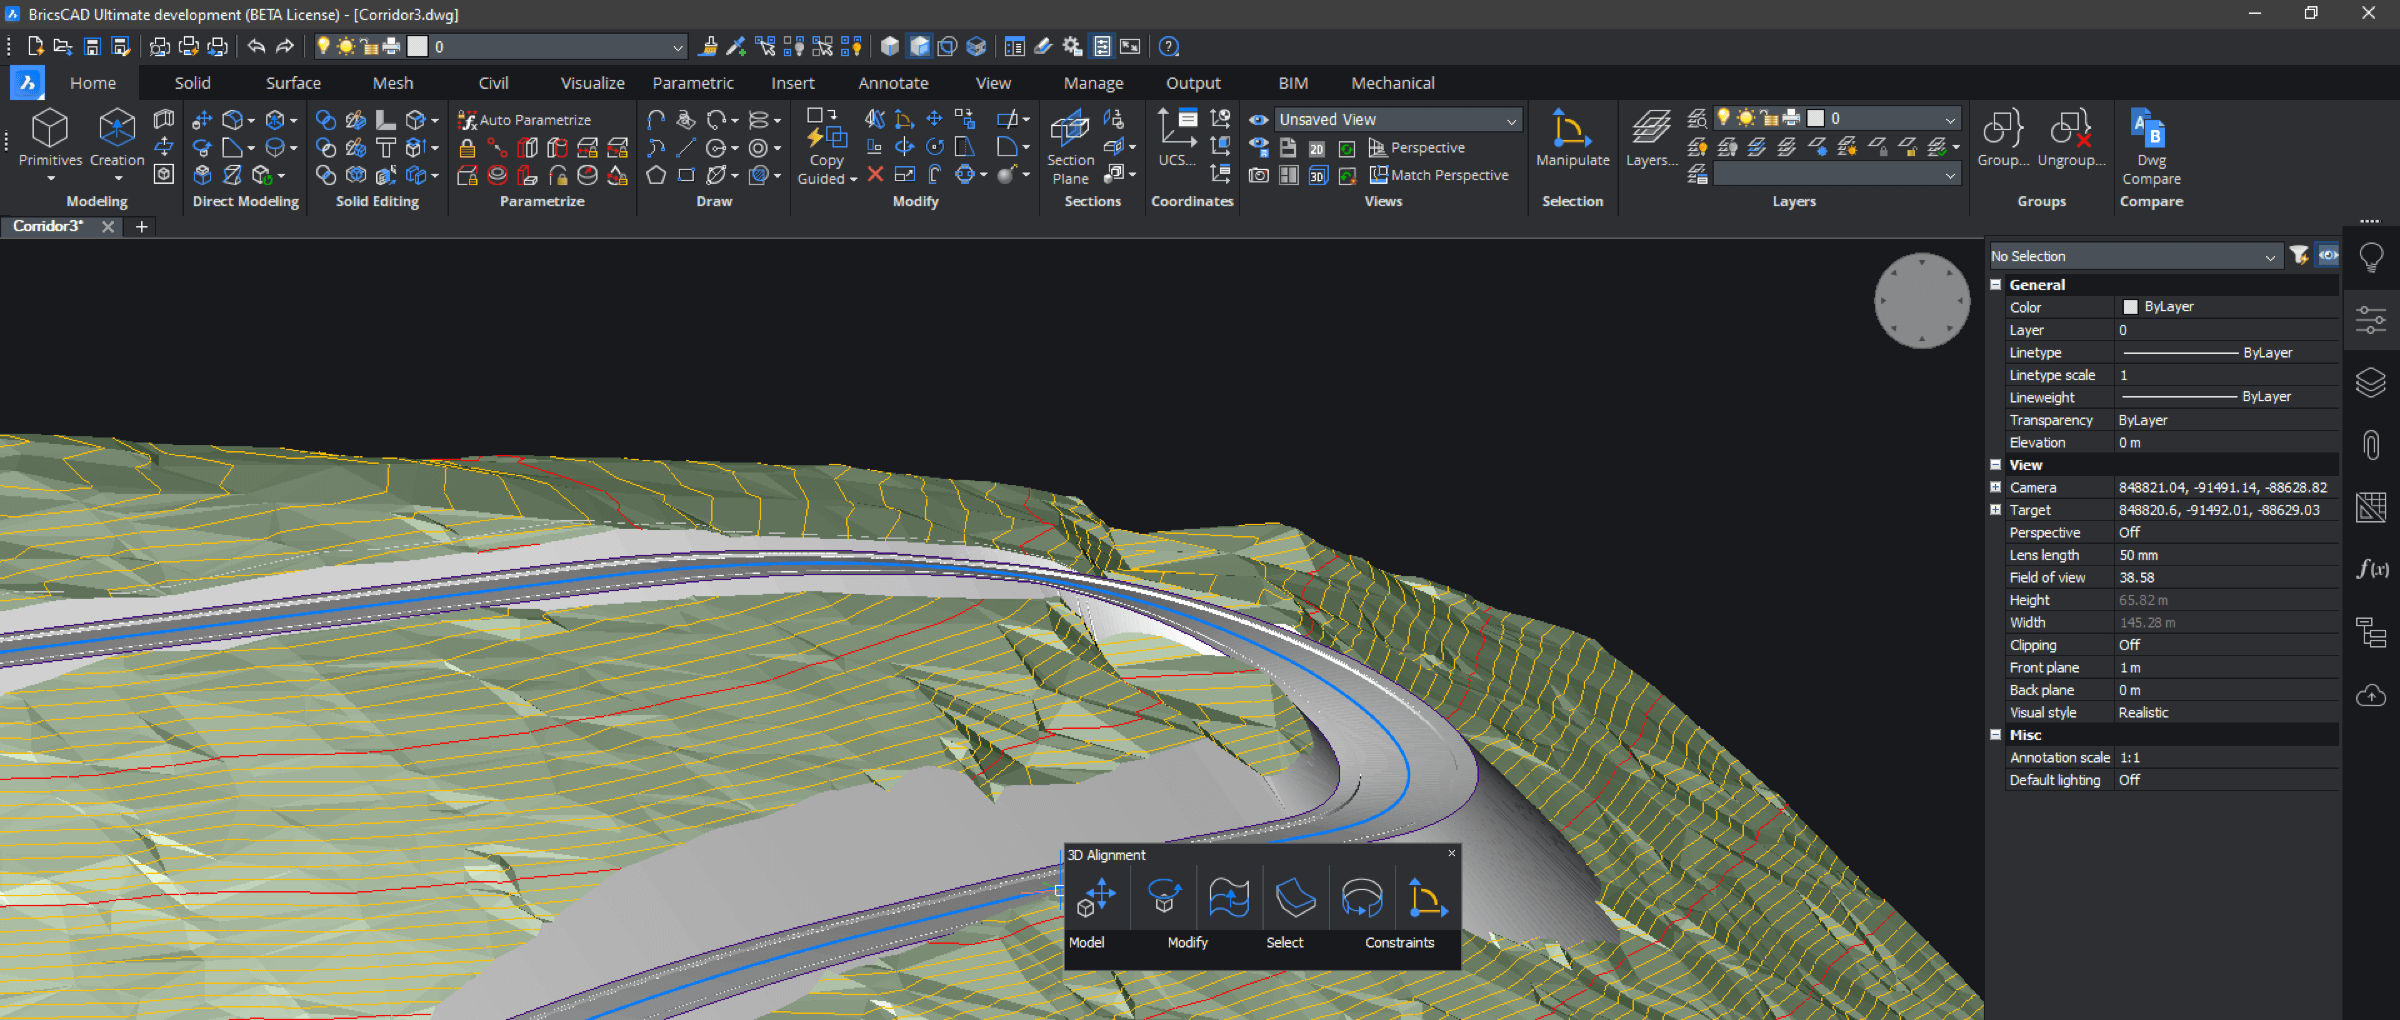 BricsCAD Pro interface 3D